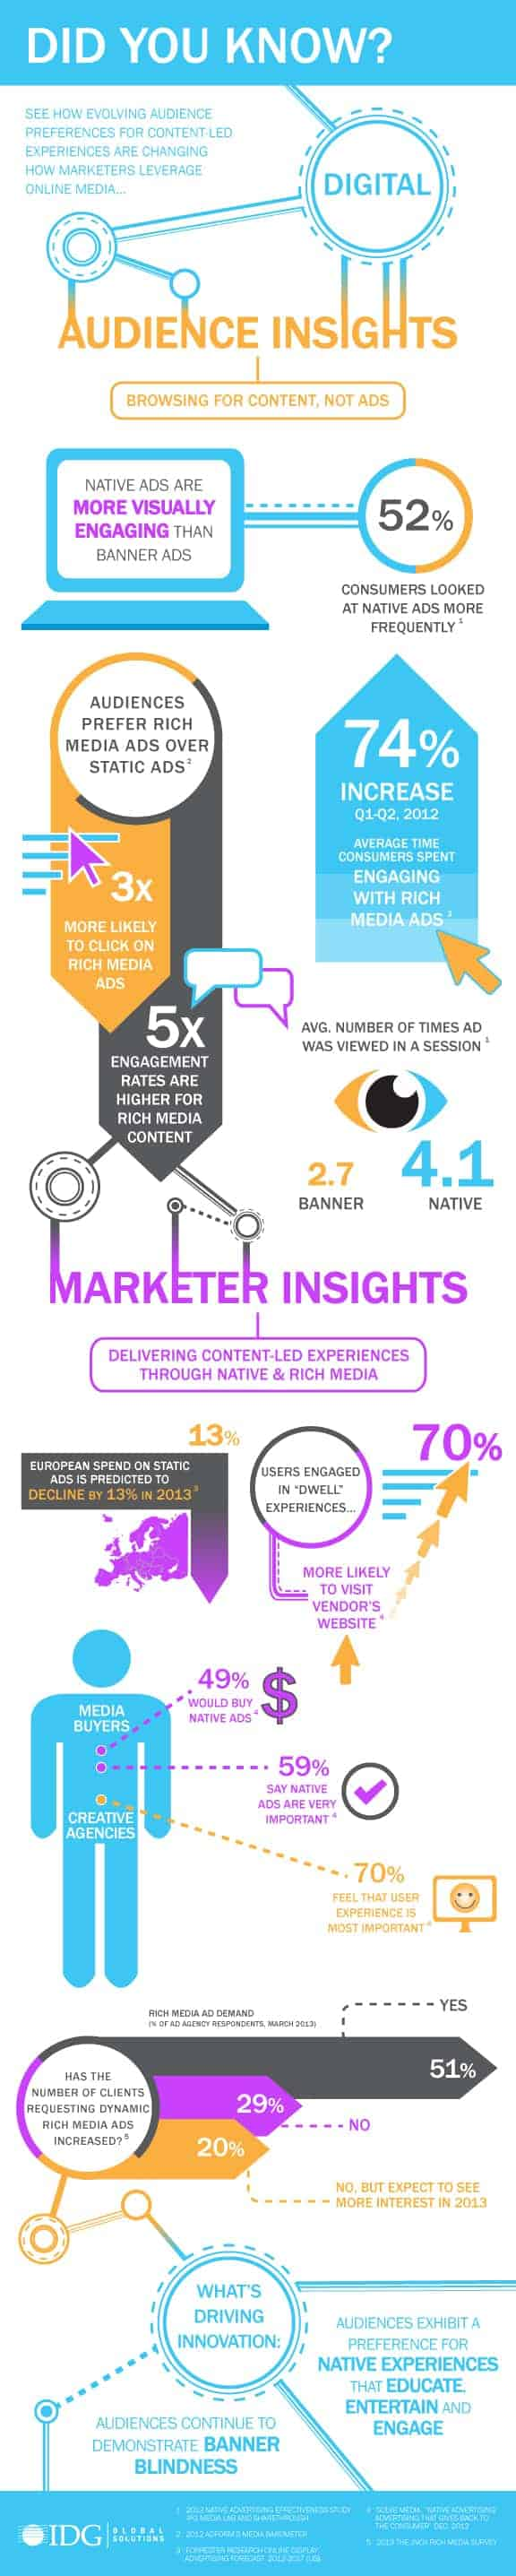 Audience and Marketer Insights on Digital [Infographic]